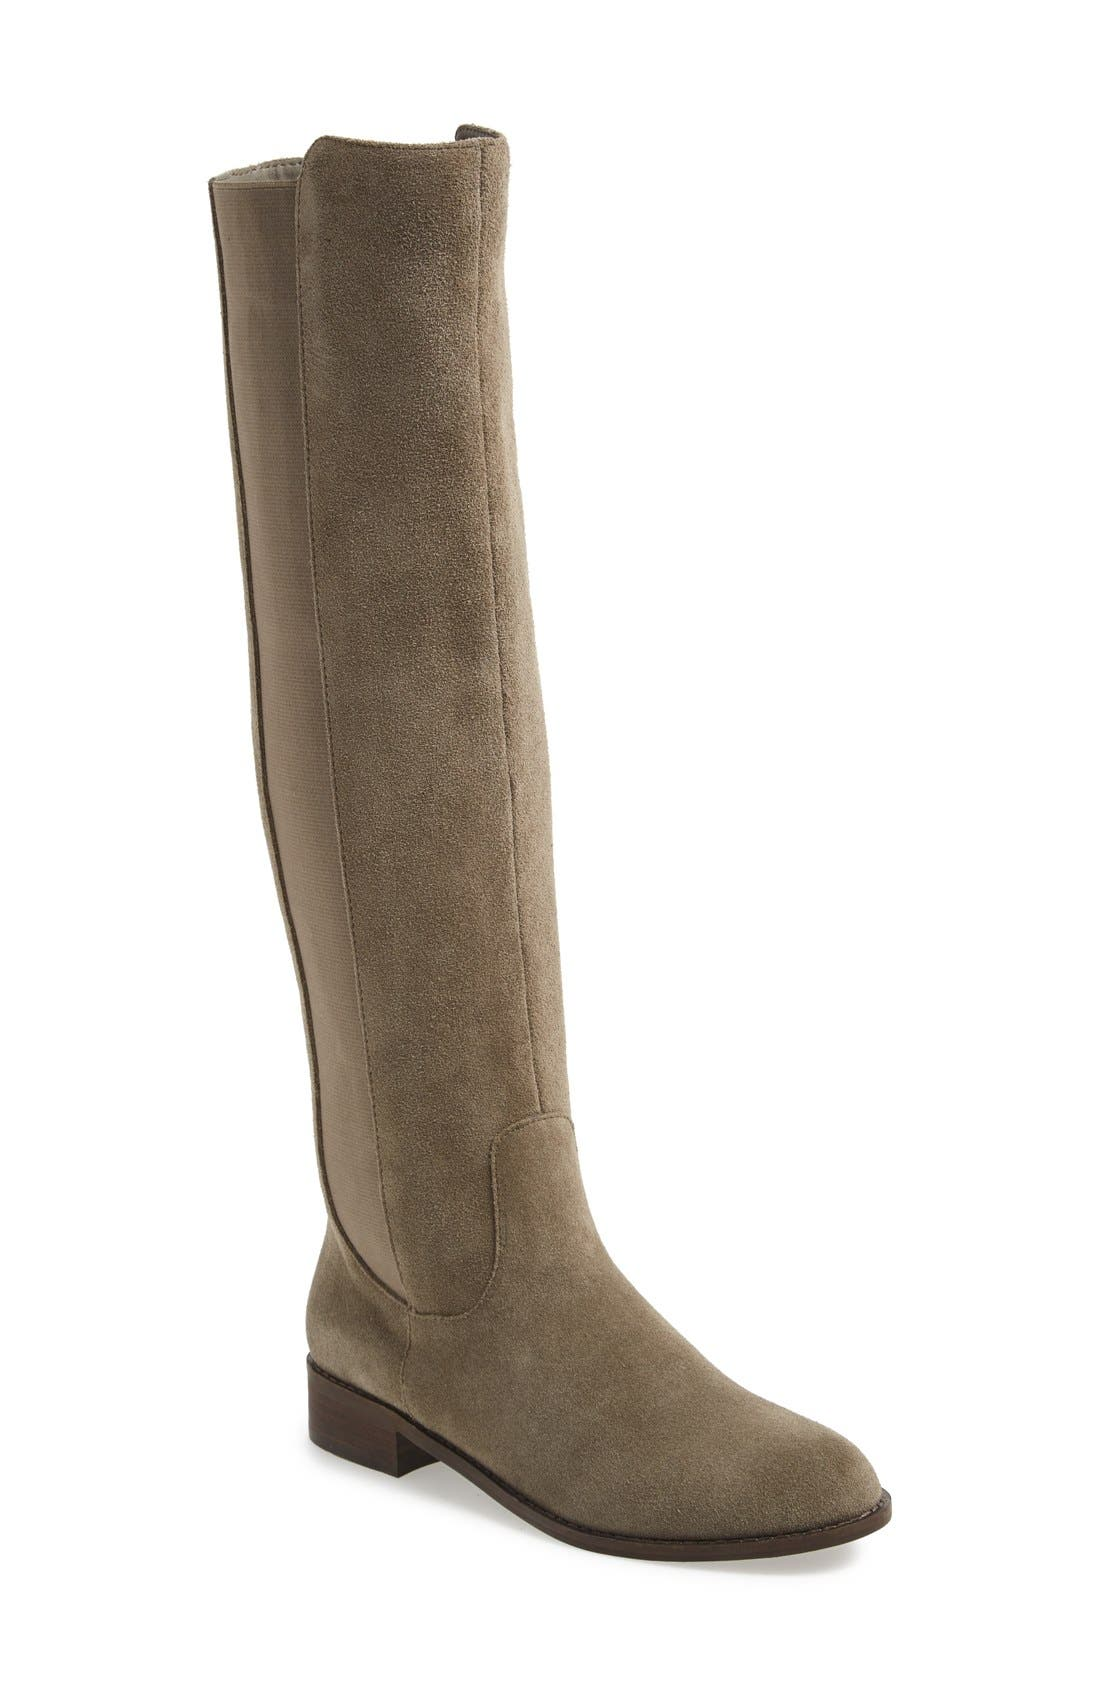 Main Image - Very Volatile 'Timber' Suede Knee High Boot (Women)